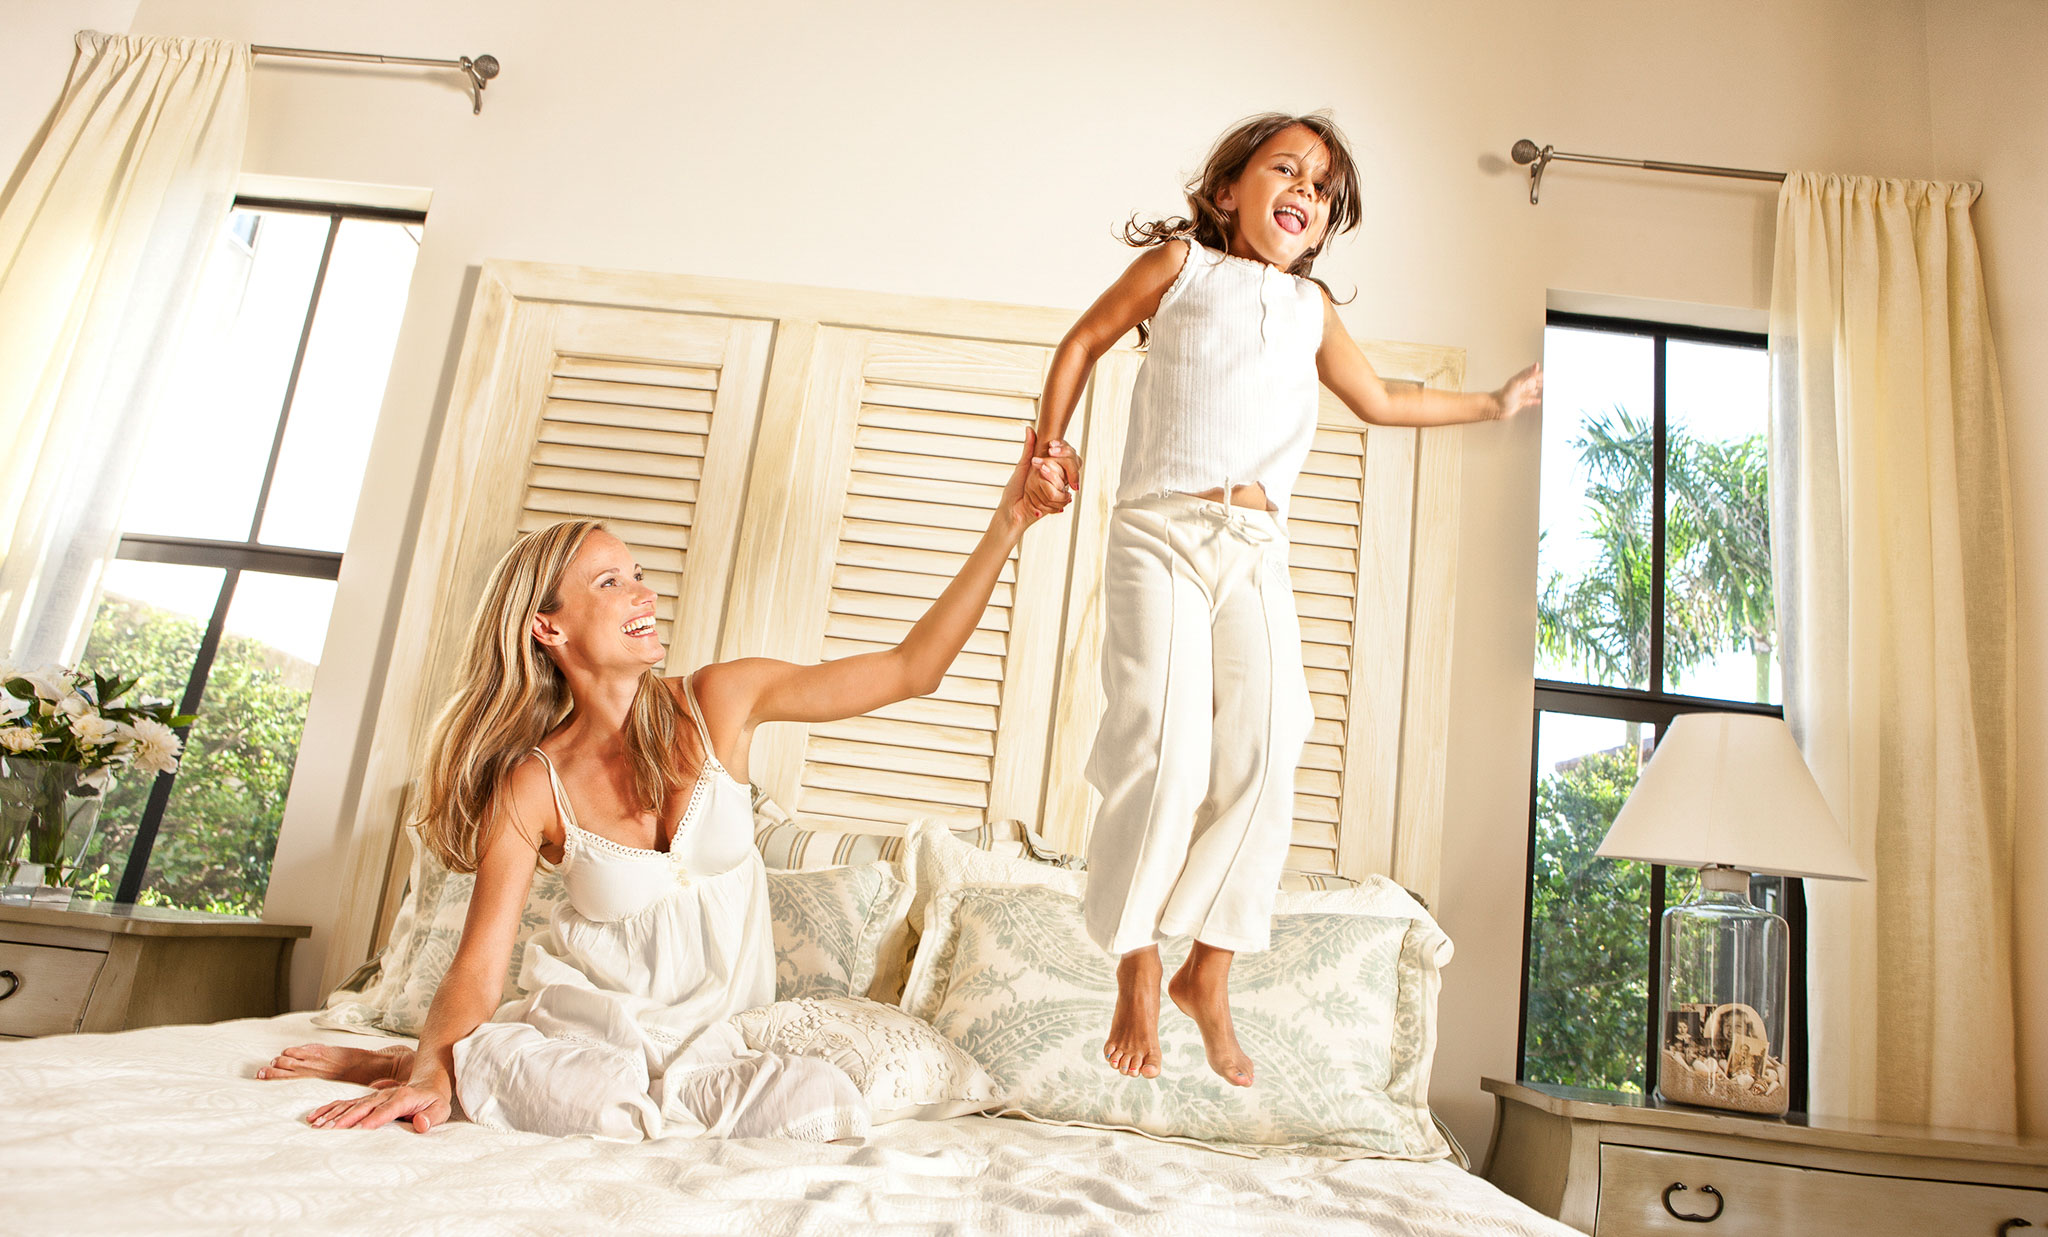 Lifestyle Jumping on bed